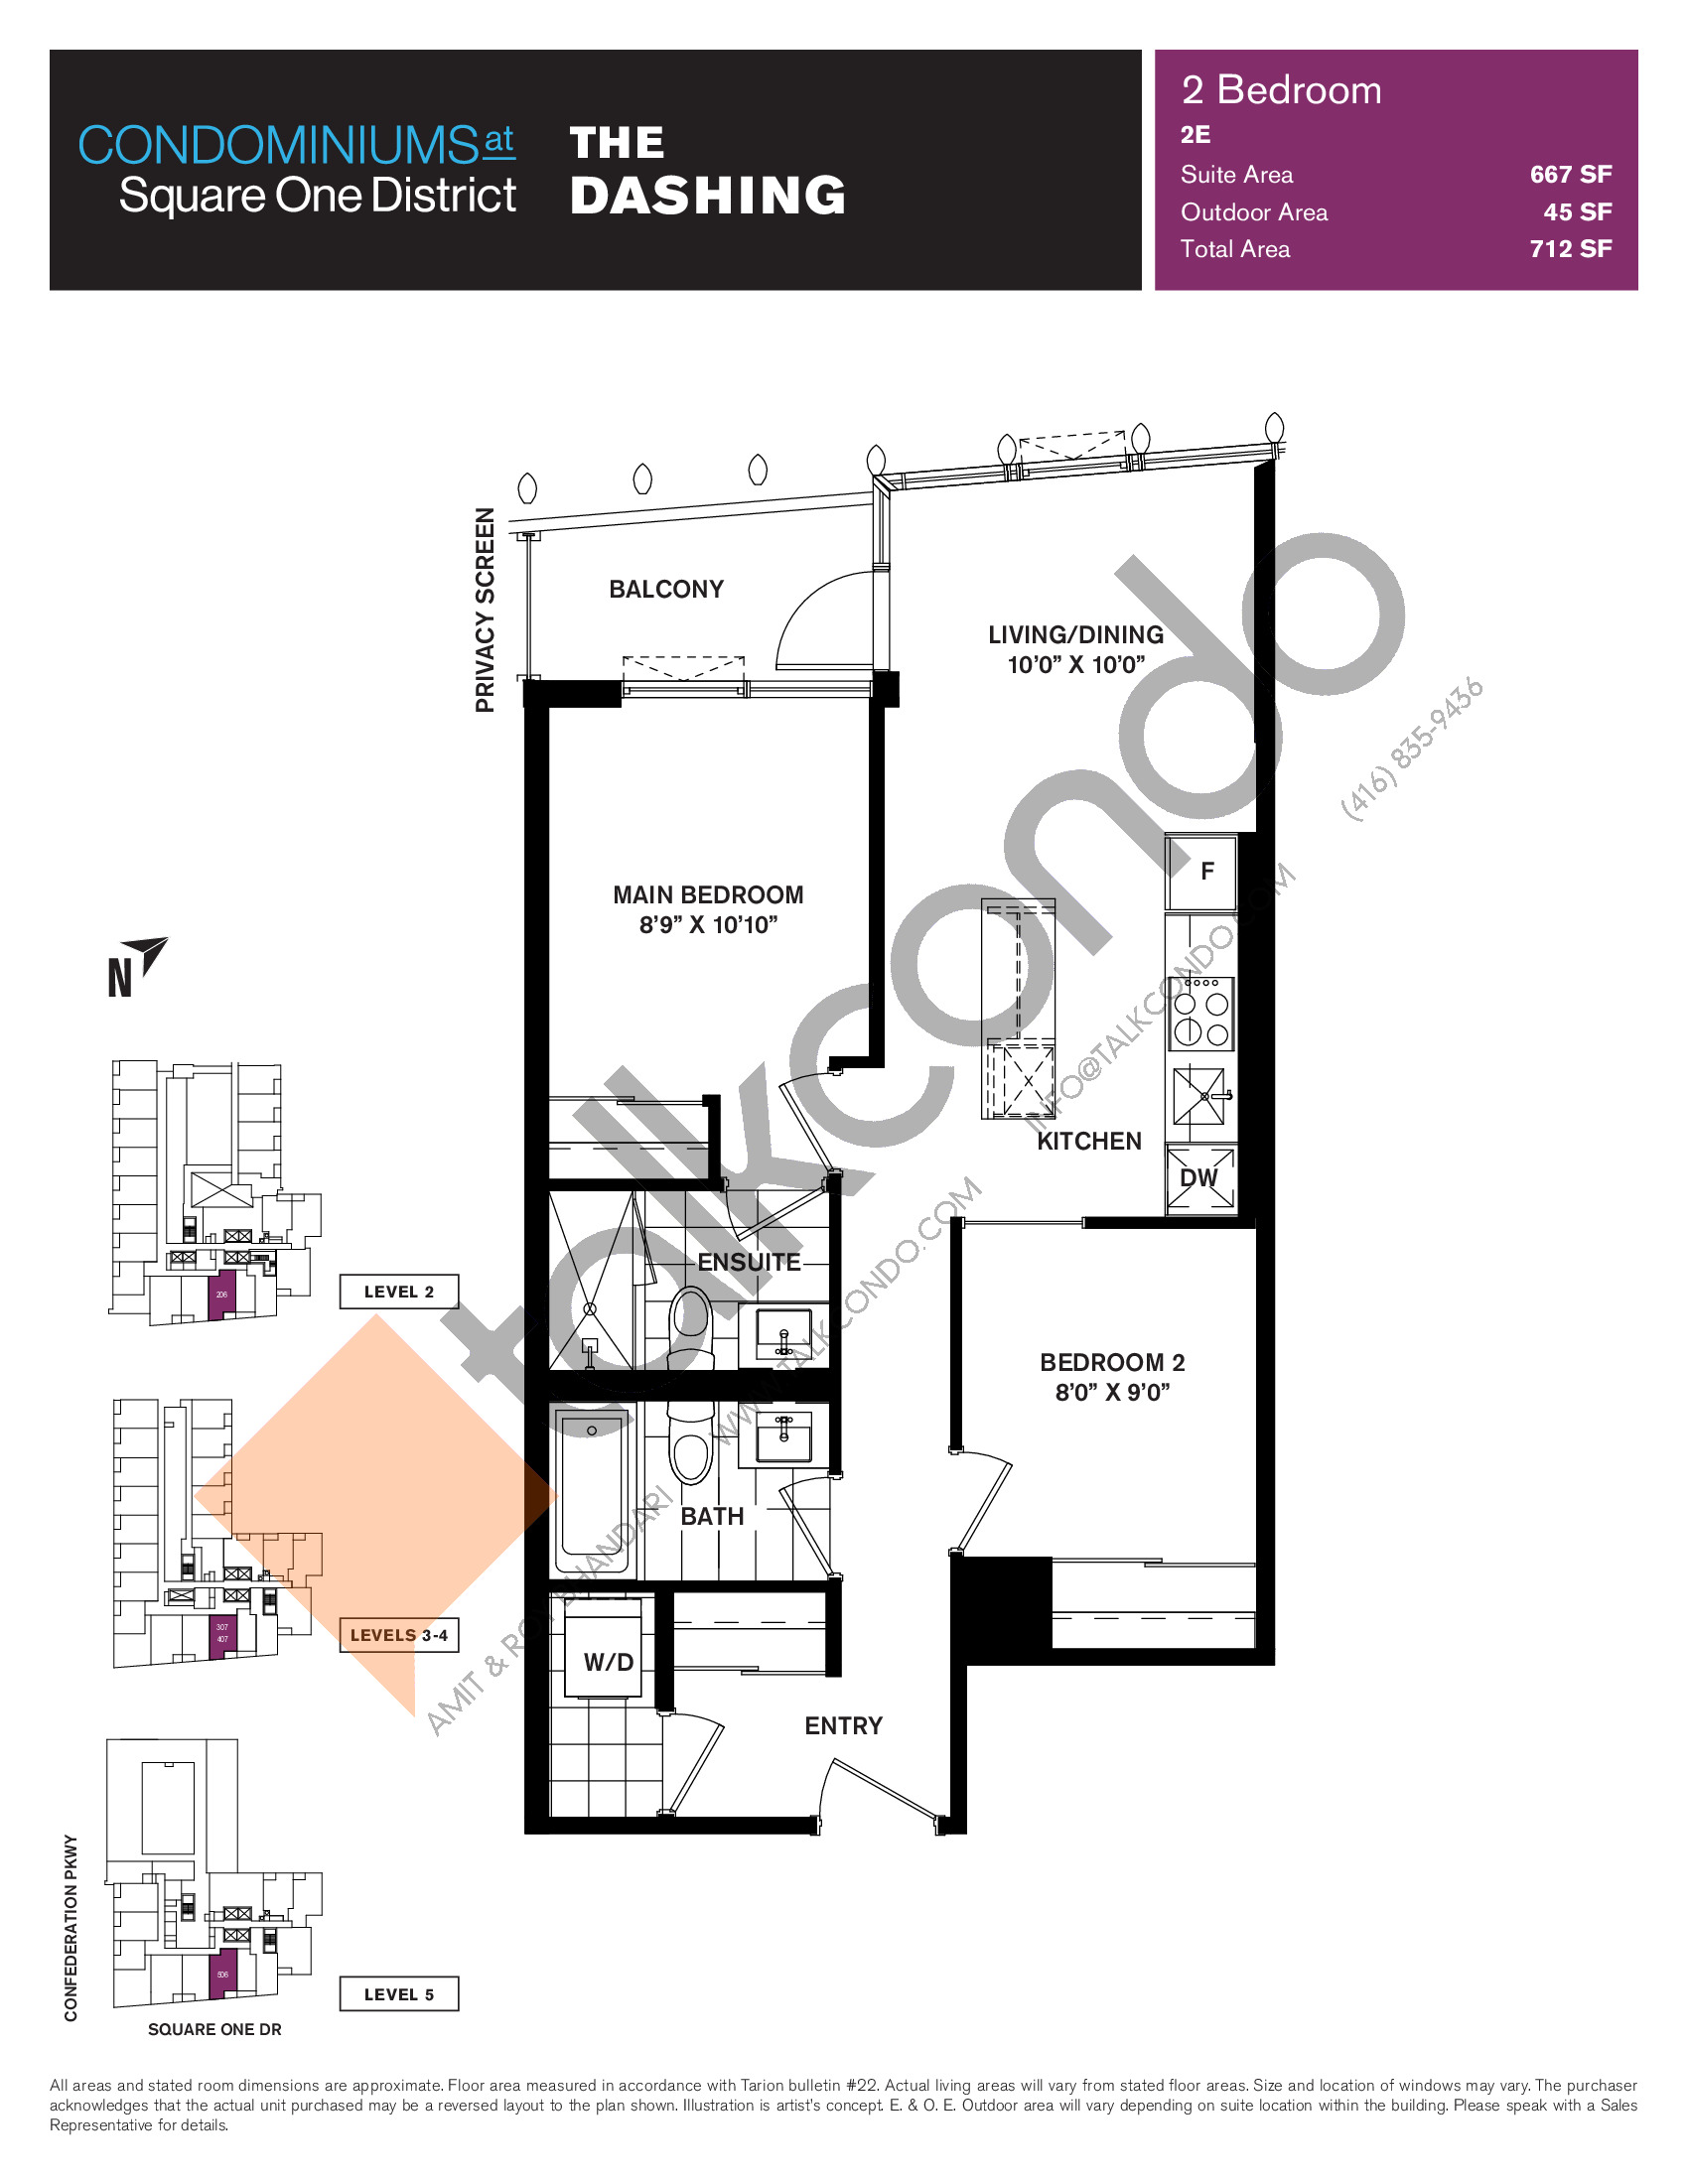 The Dashing Floor Plan at Condominiums at Square One District - 667 sq.ft